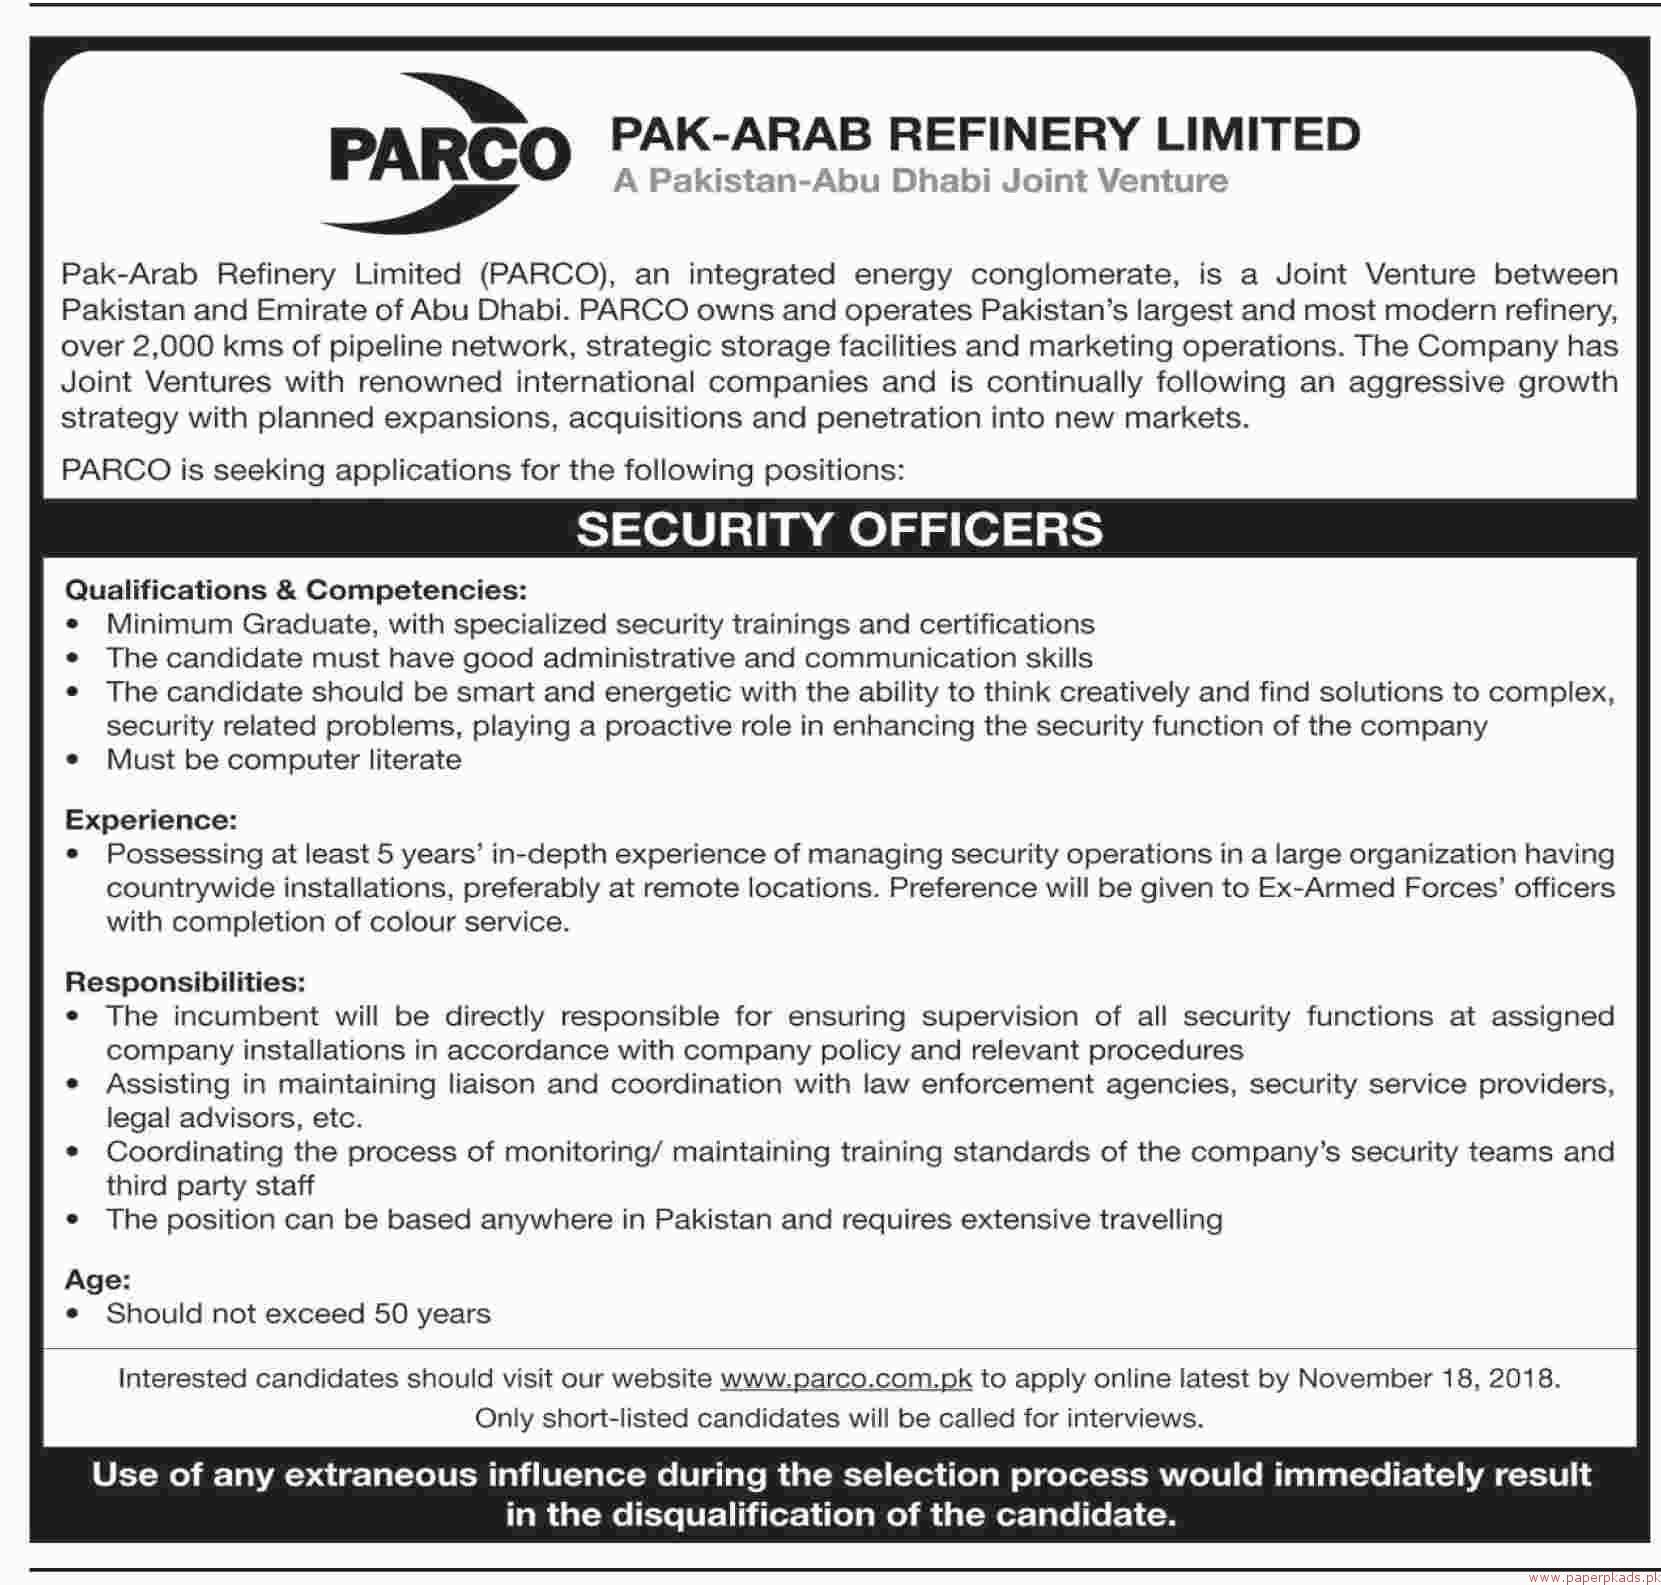 Pak-Arab Refinery Limited PARCO Jobs 2018 Latest